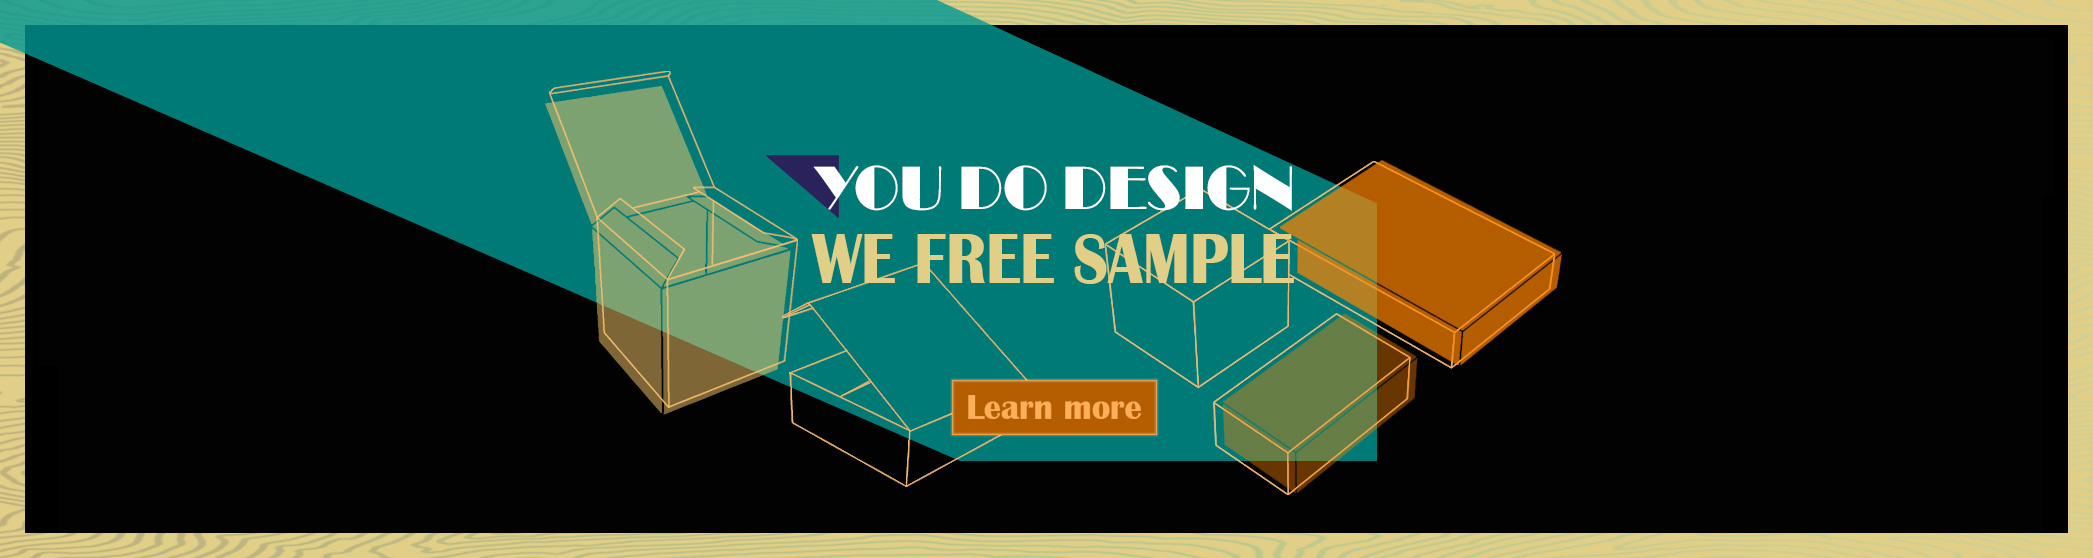 You do design - We free sample